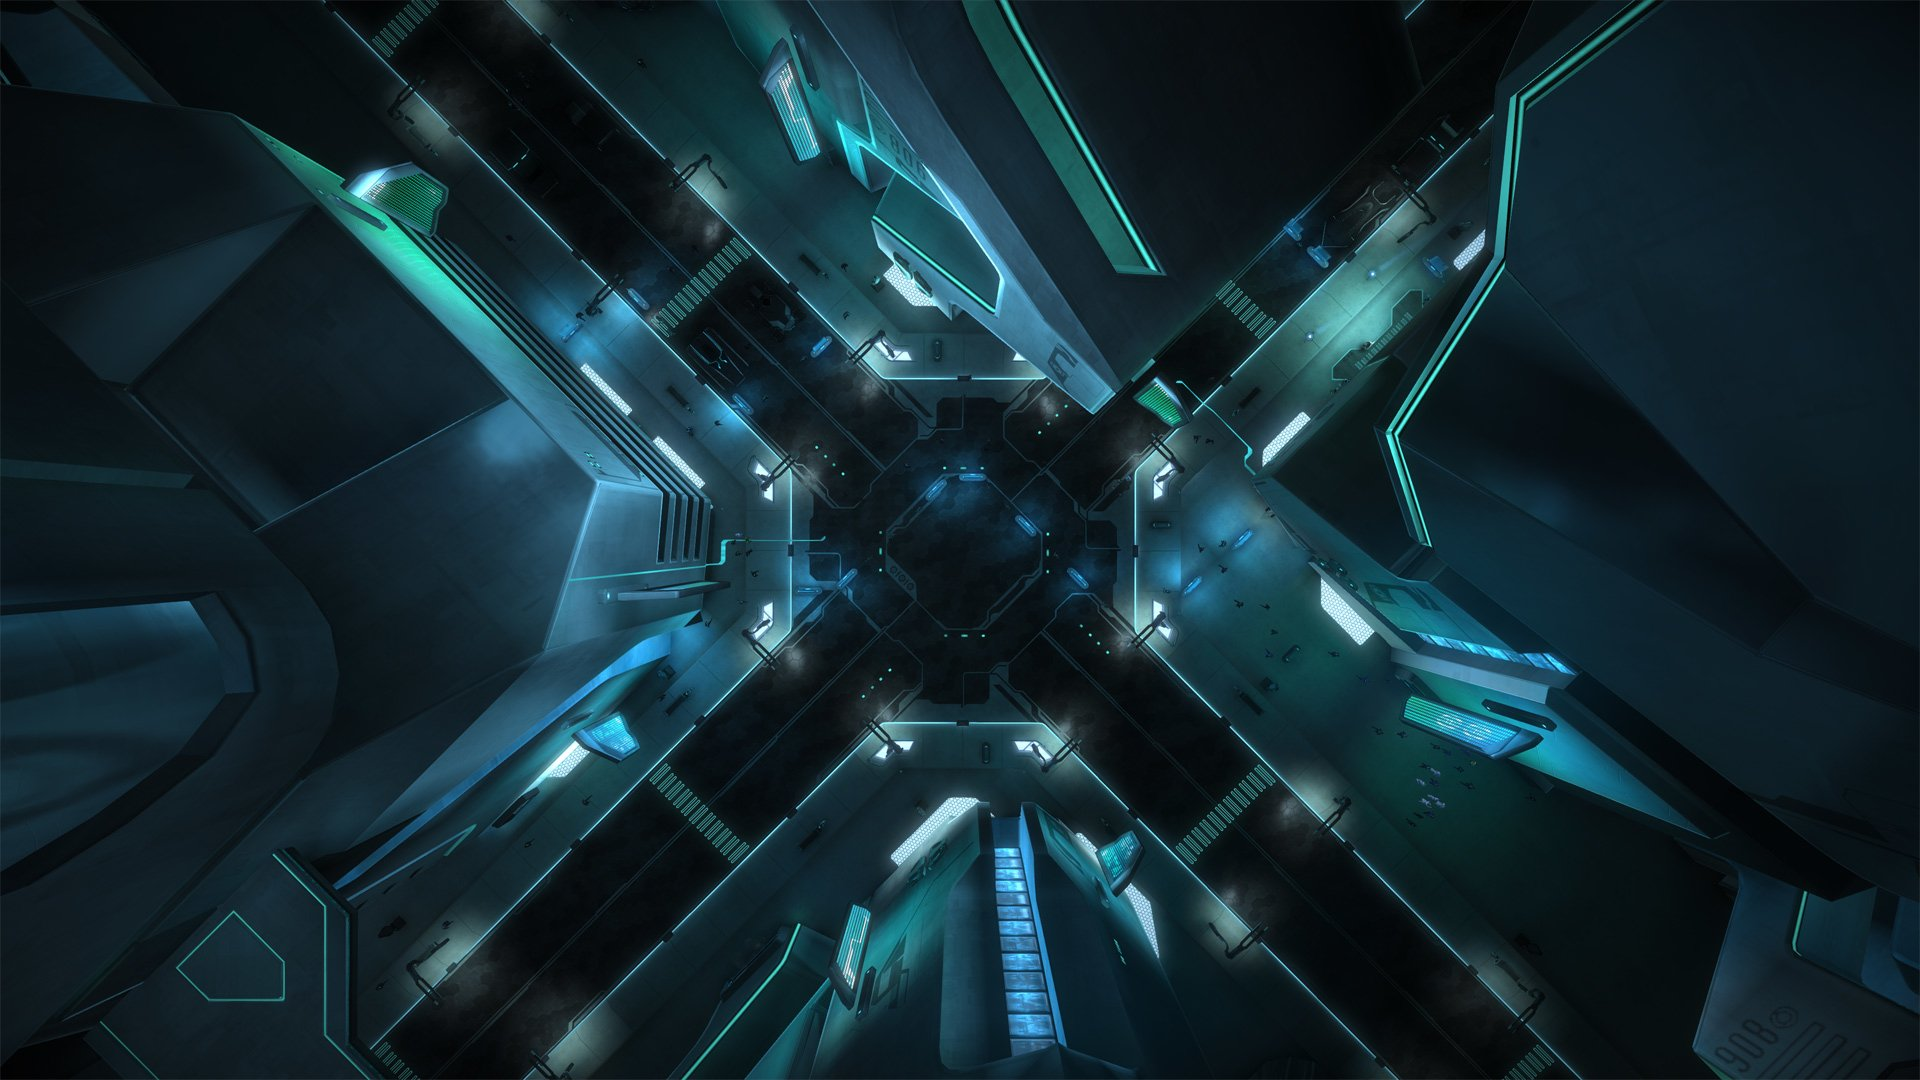 tron wallpaper hd style - photo #21